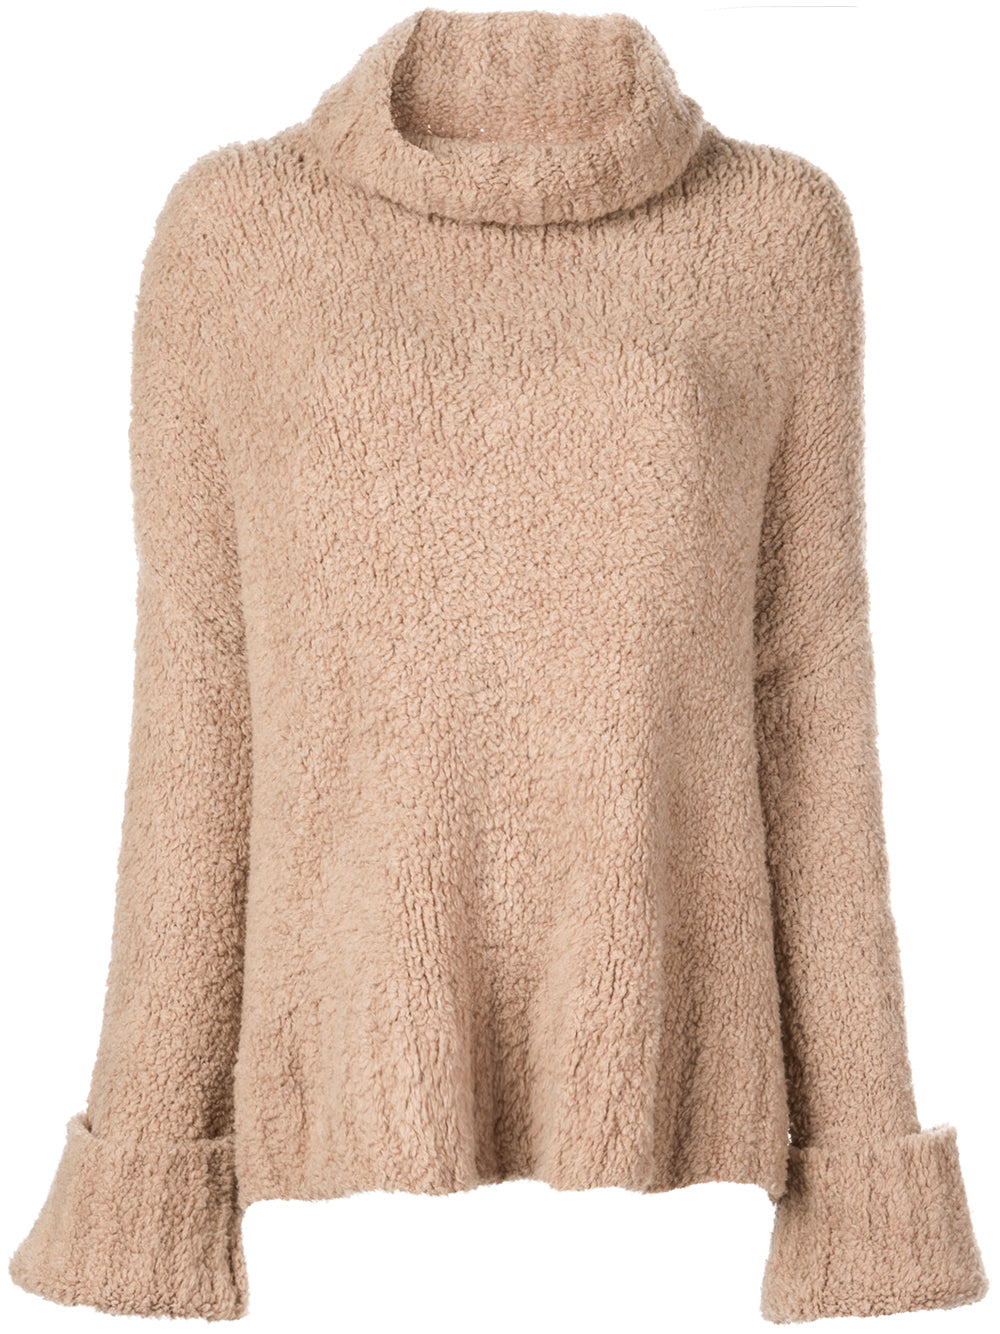 MERINO CASHMERE TEDDY BEAR TURTLENECK